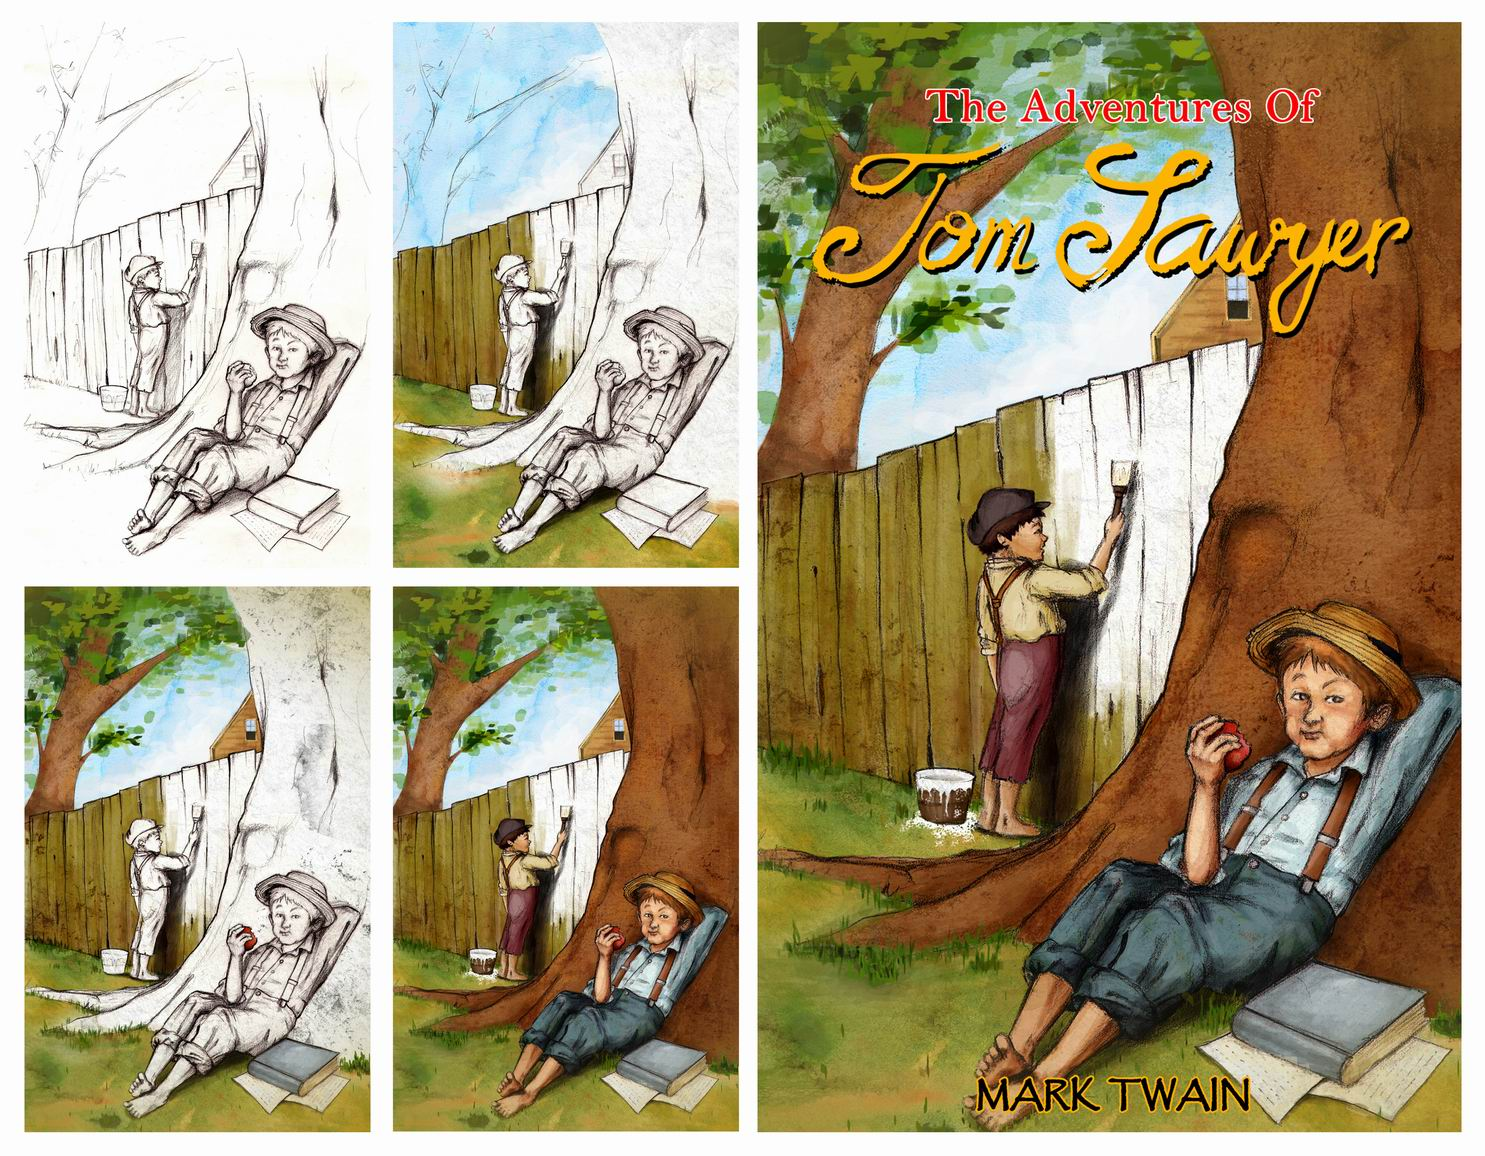 a comparison of the adventures of huckleberry finn and the adventures of tom sawyer by mark twain